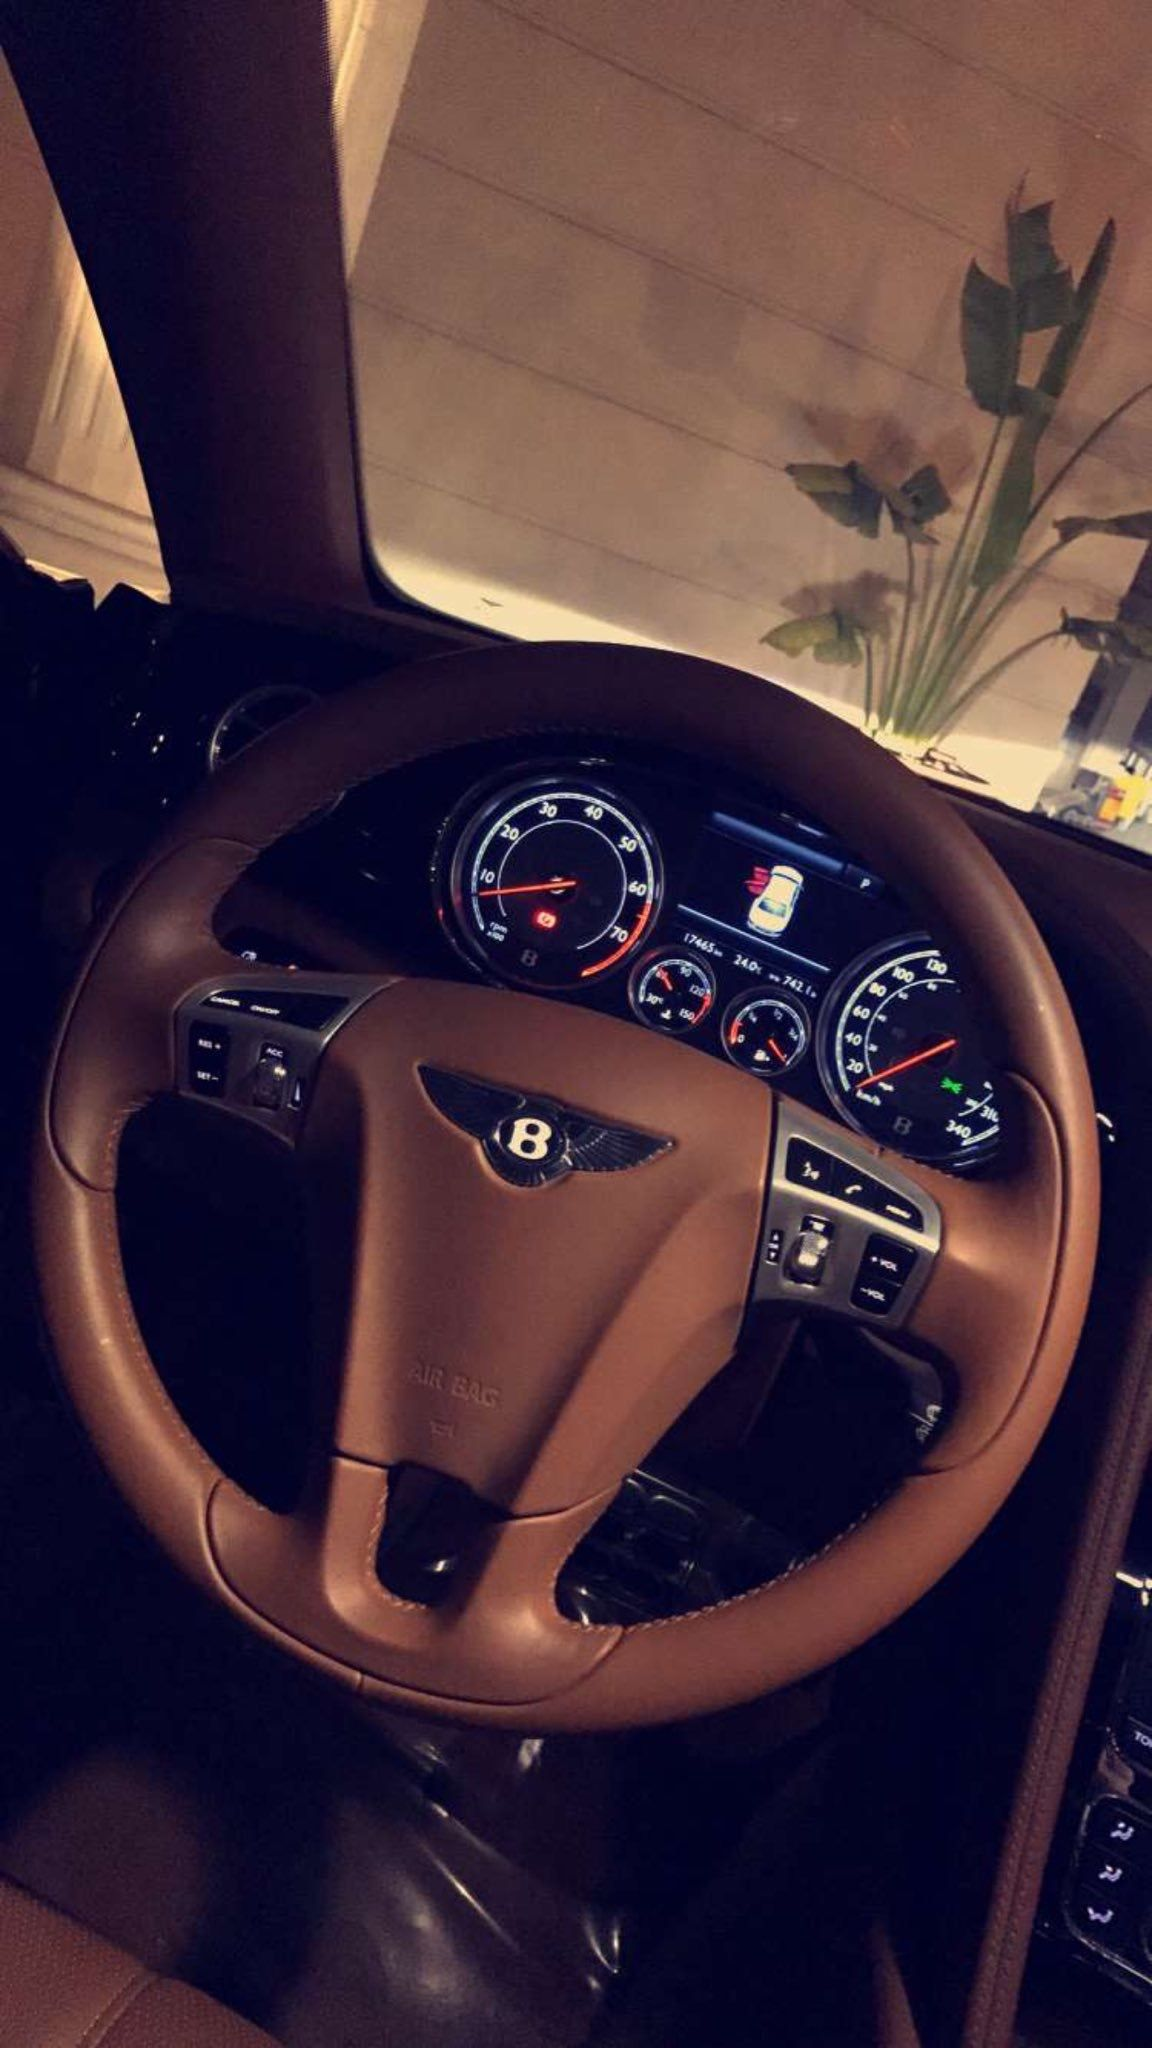 Pin By On Snaps Mercedes Interior Luxury Cars Dream Cars